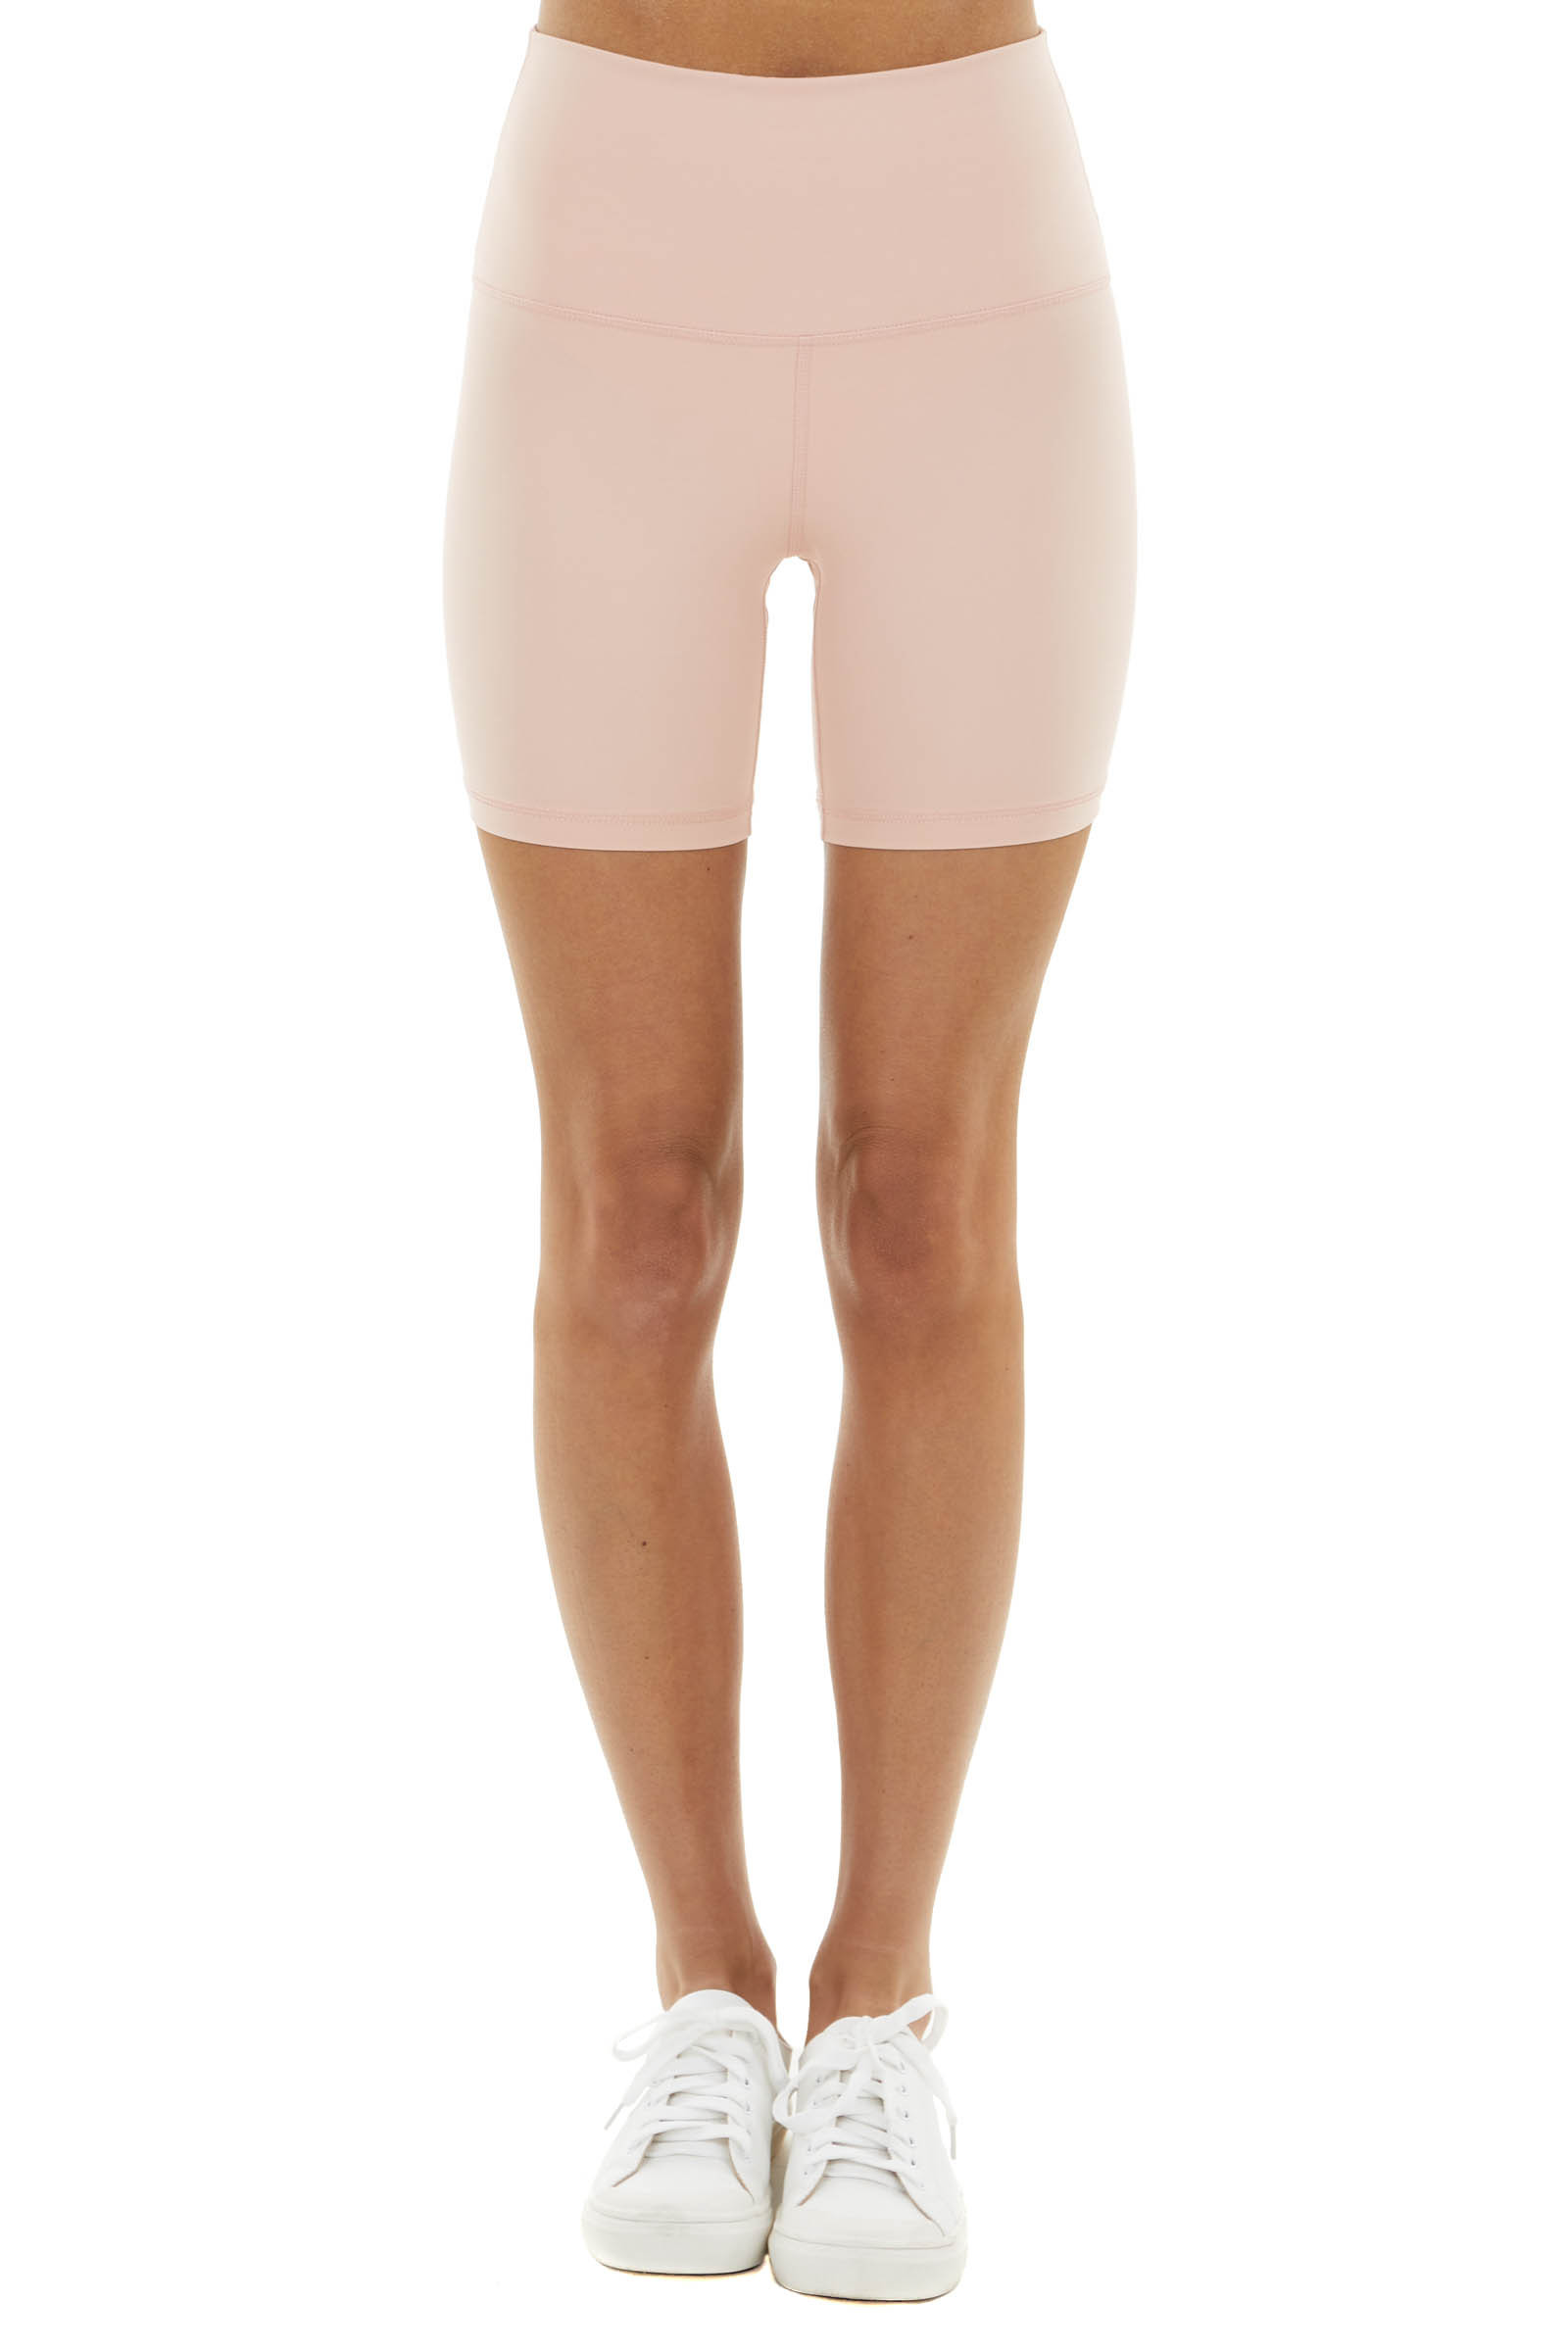 Peach Pink Super Stretchy High Waisted Activewear Shorts